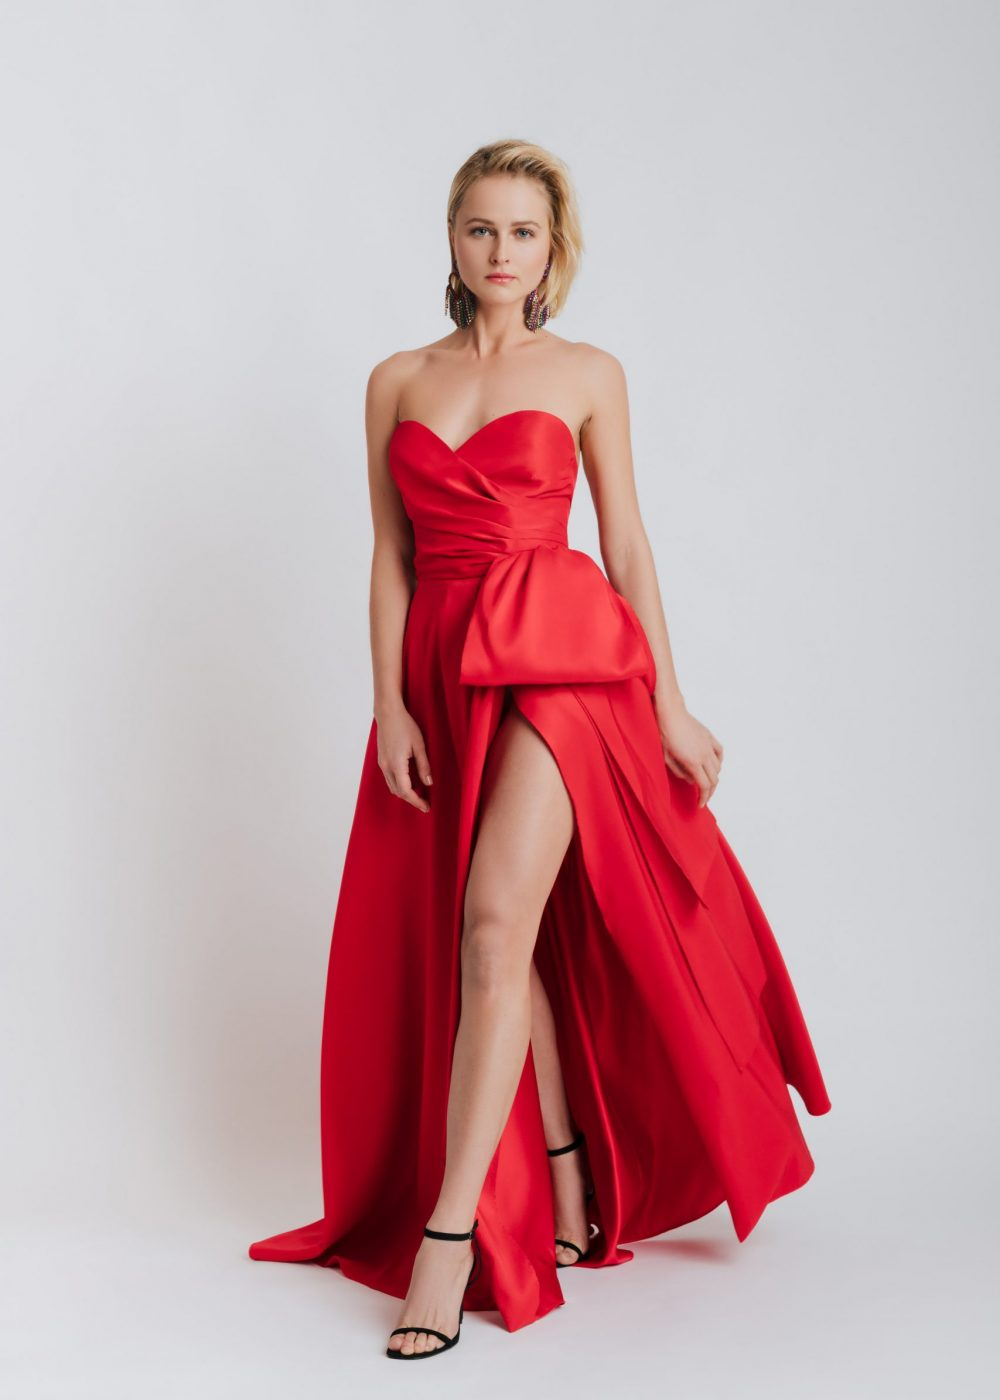 red-long-dress-with-bow-elsa-barreto